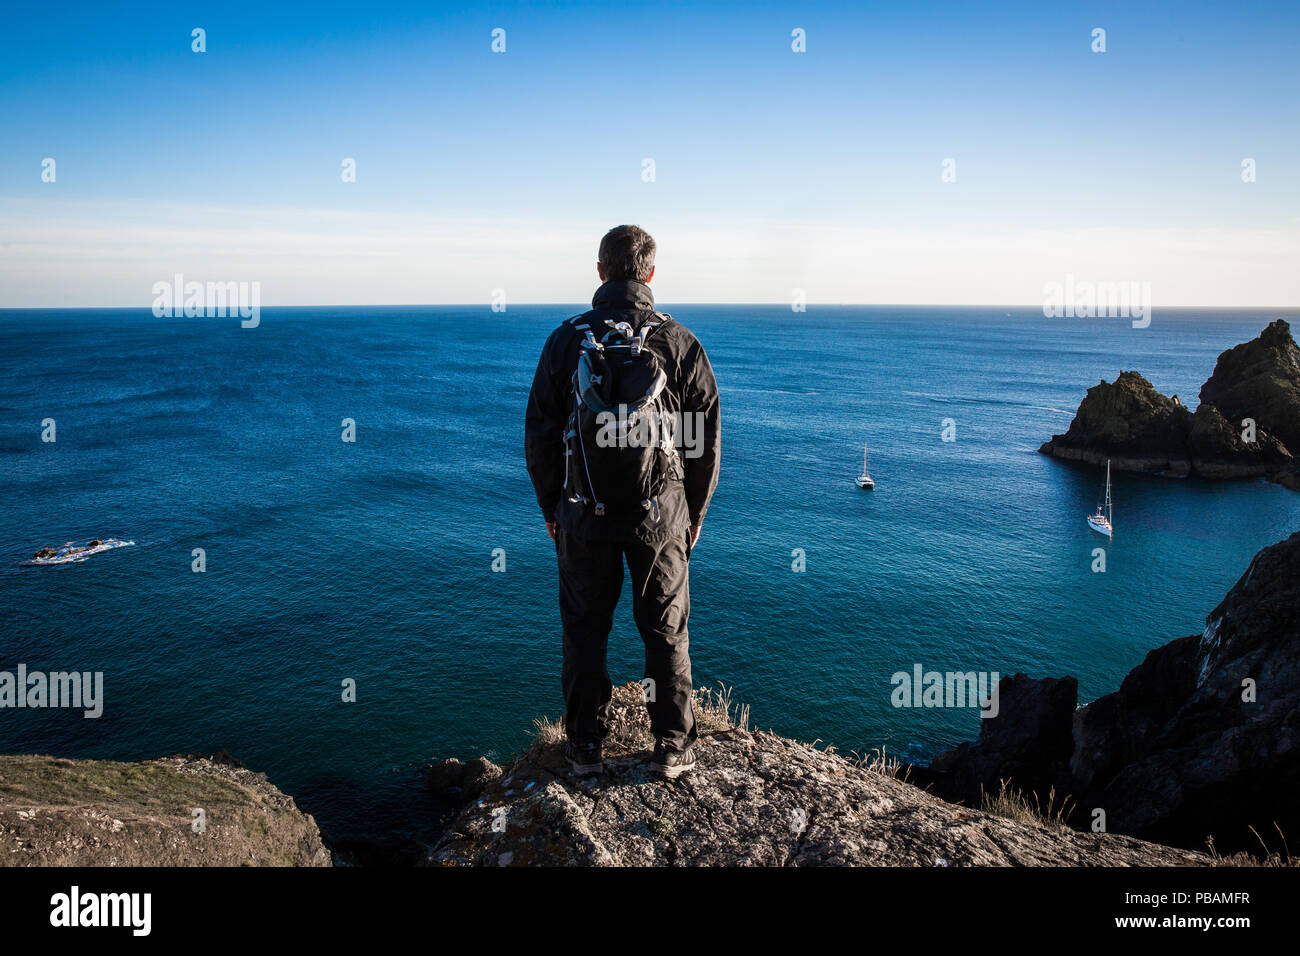 A rear view of a male backpacker or hiker standing on a high cliff and admiring an awe inspiring sea view Stock Photo